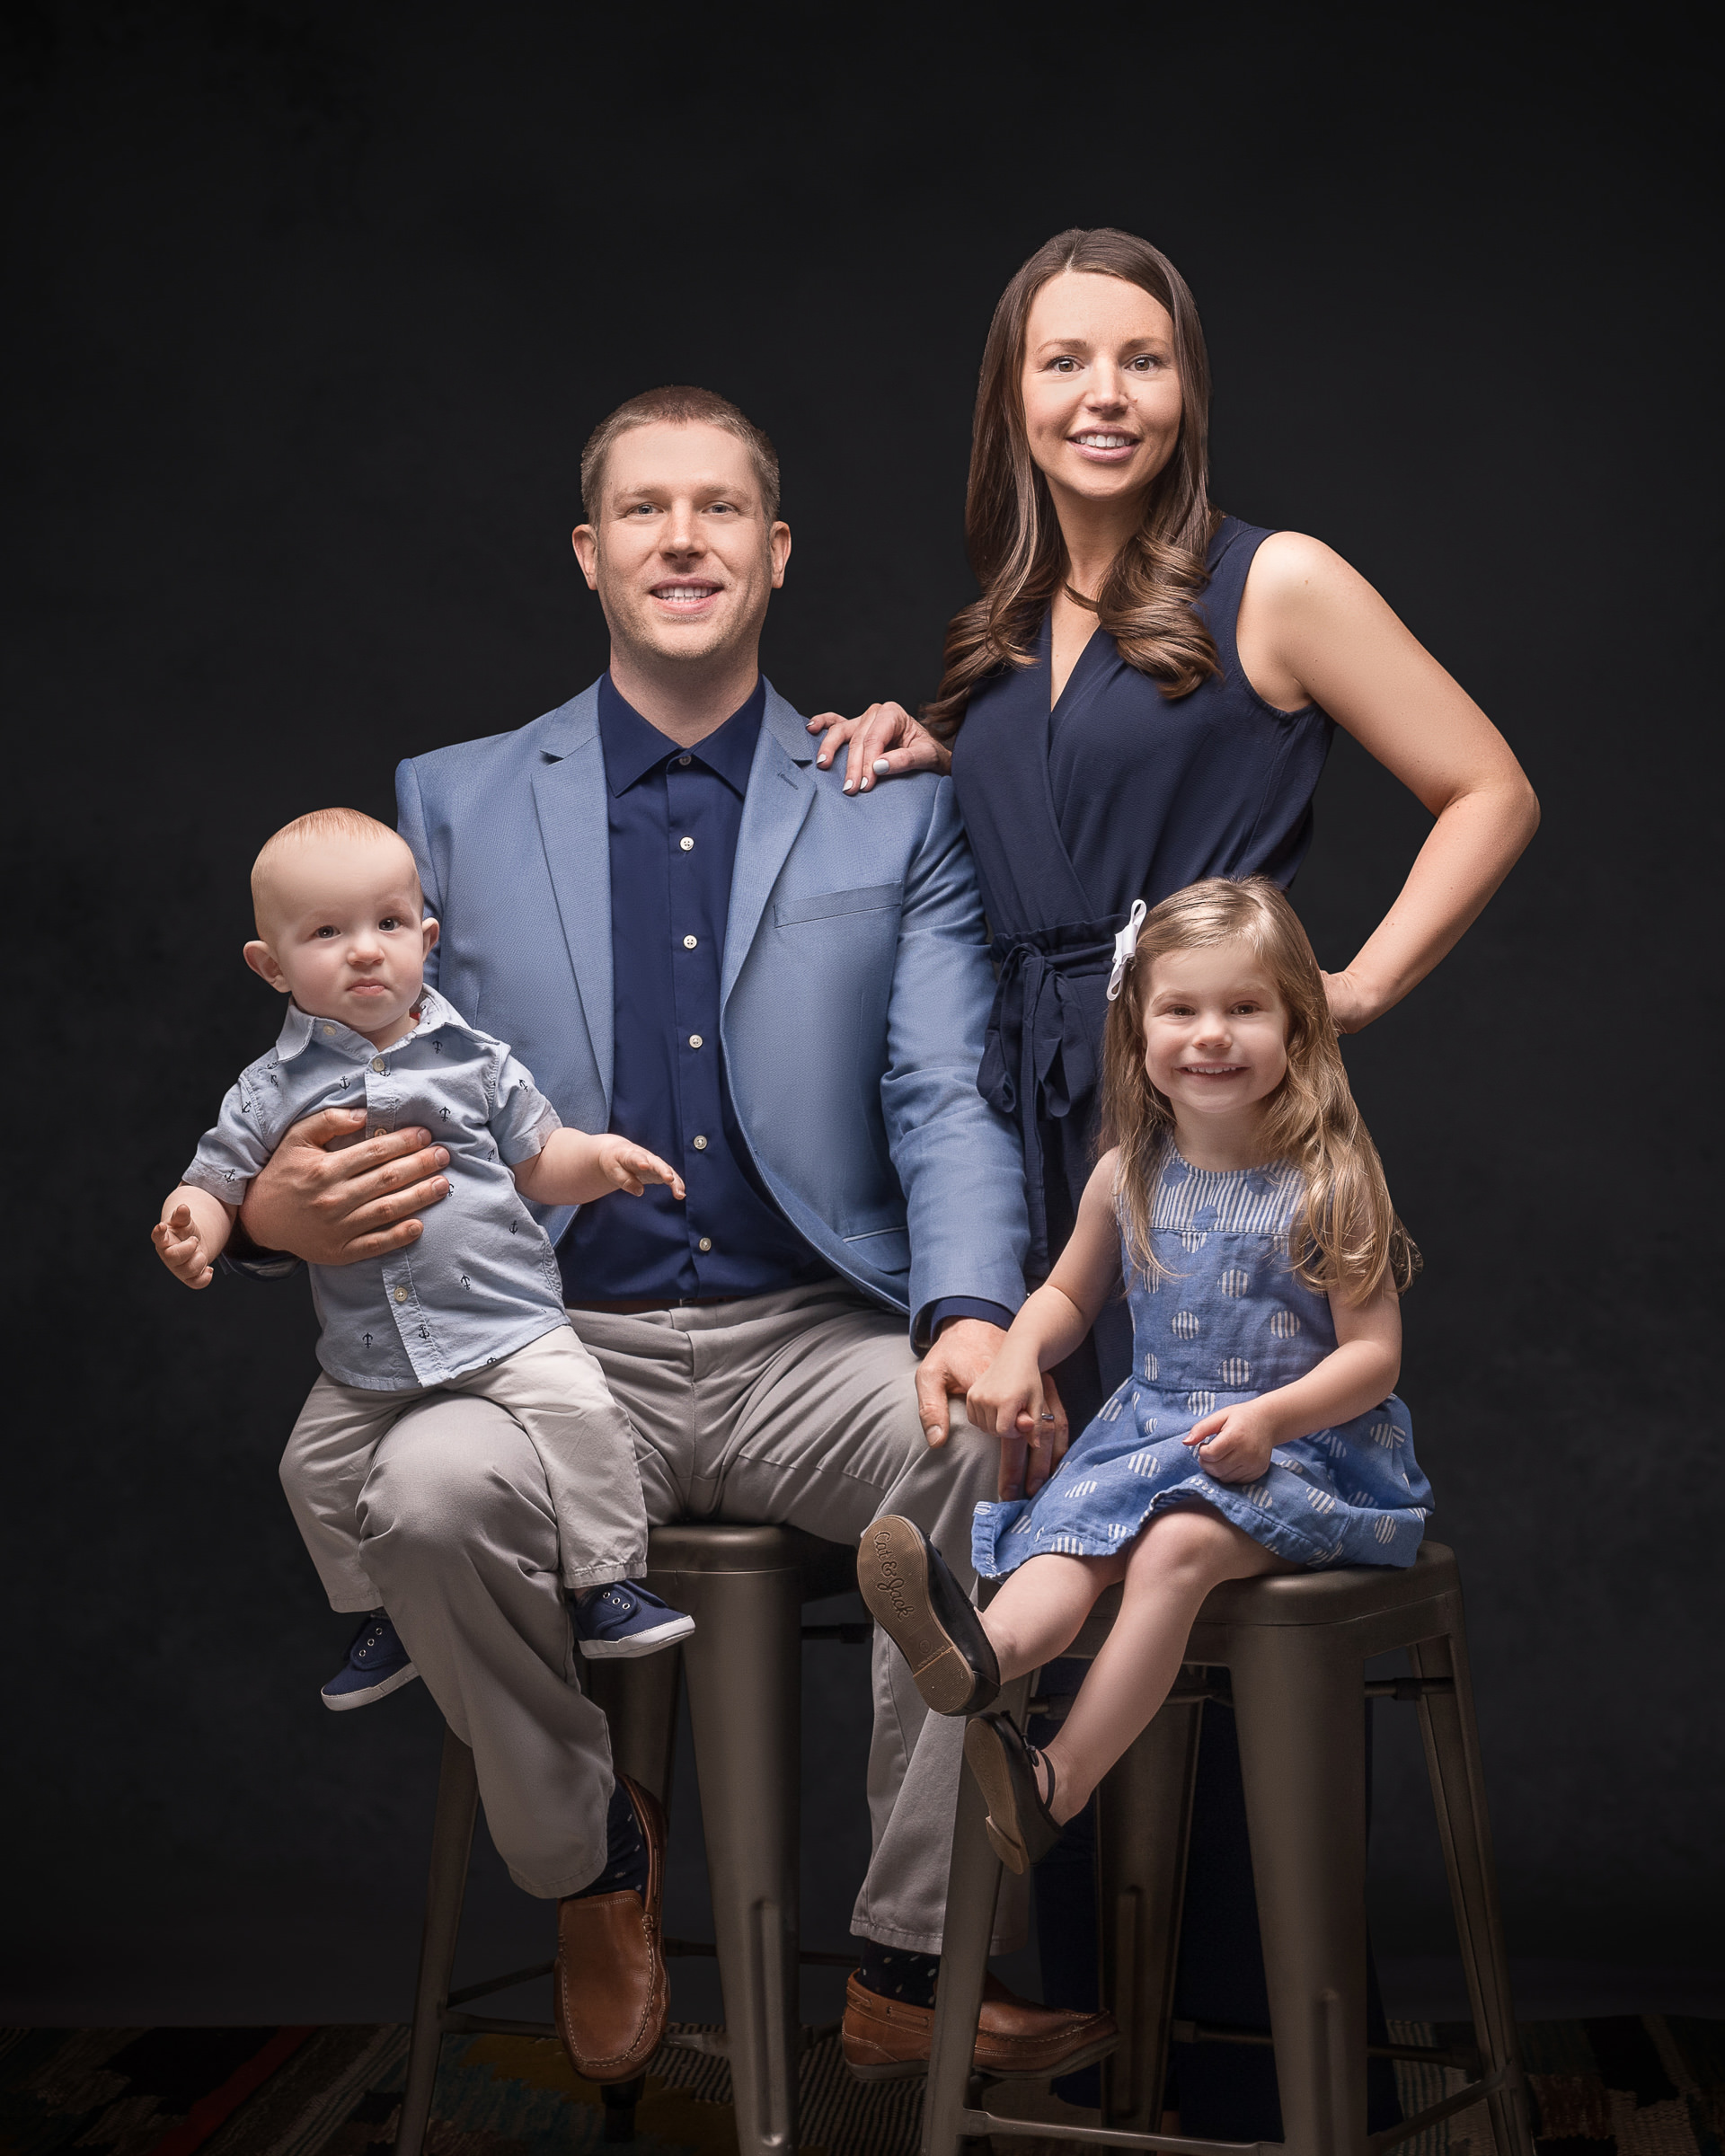 2019-04-13-Timmerman Family0071_2-retouched high res-retouched web.jpg